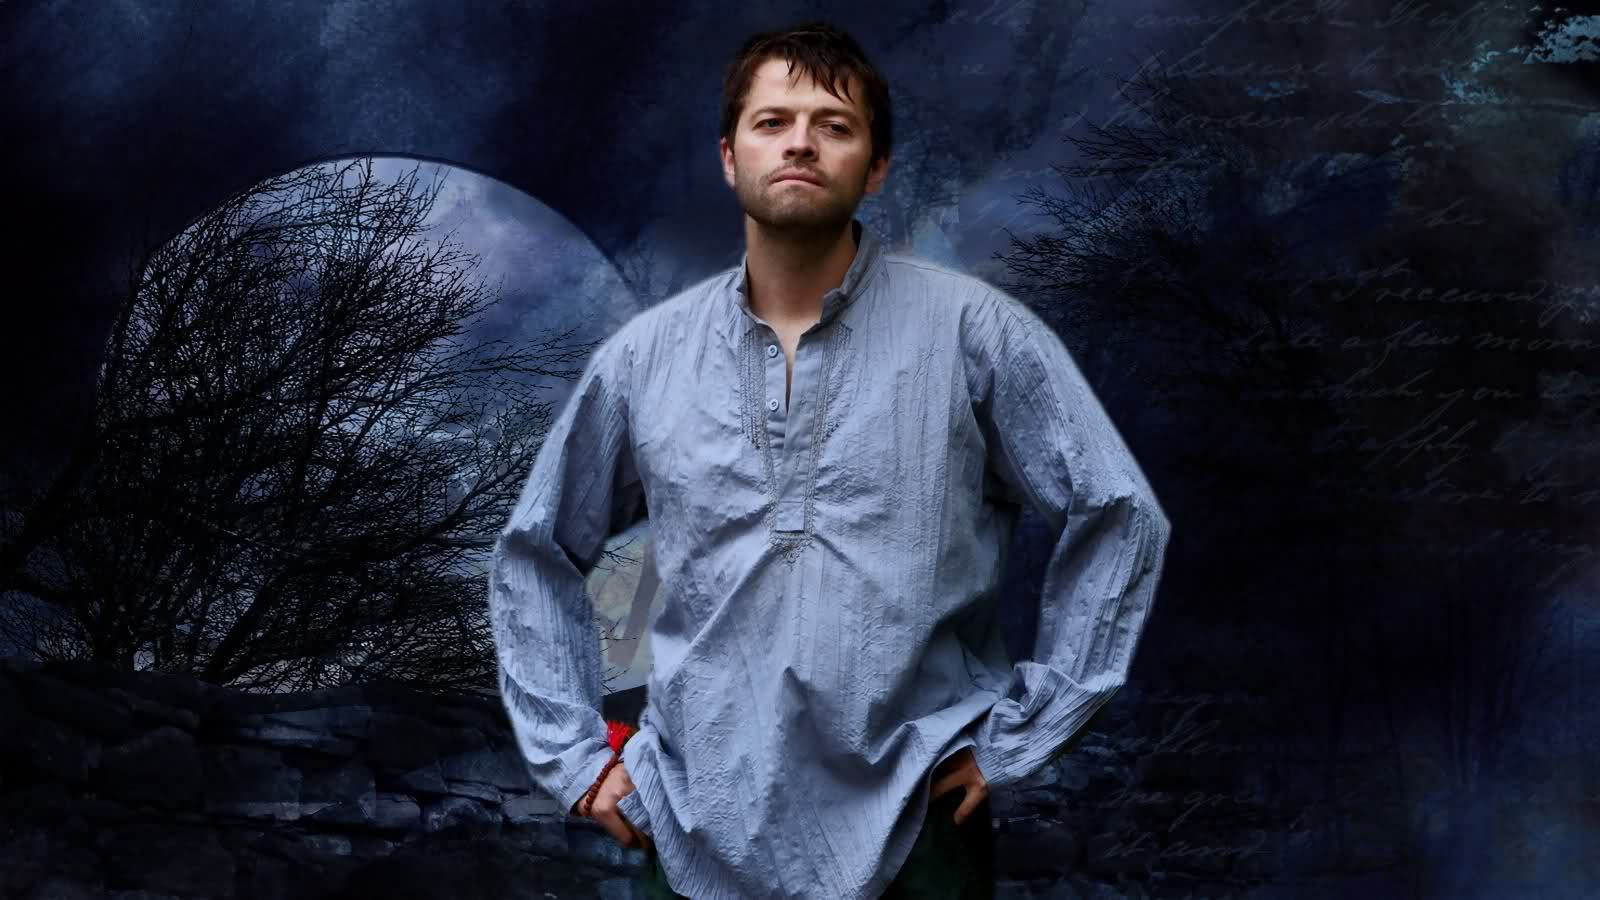 misha collins wallpaper iphone viewing gallery